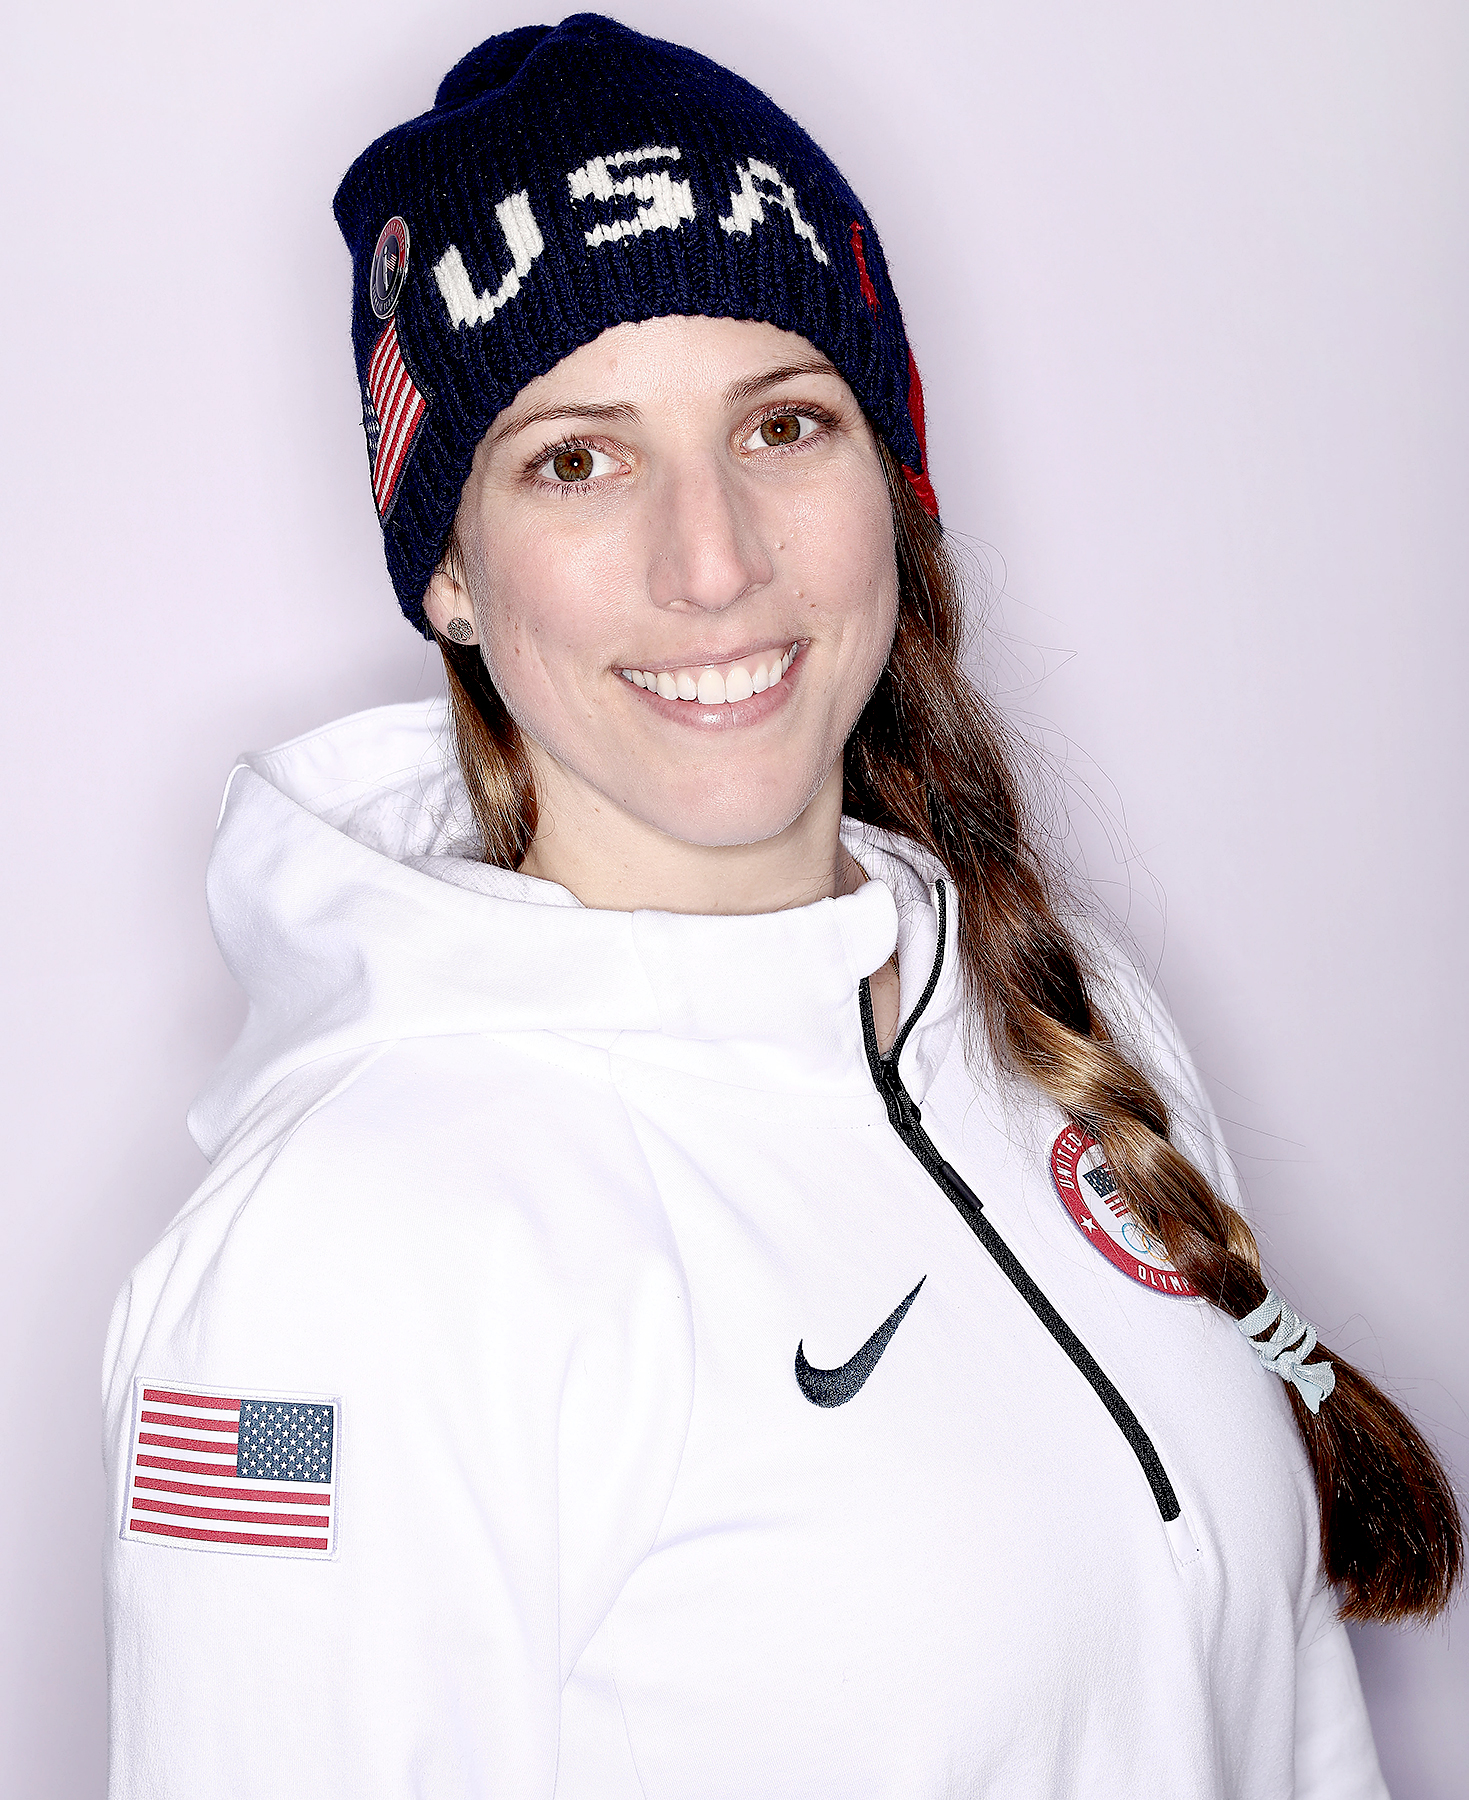 Erin-Hamlin - As a bronze-medal Olympic luger, the 31-year-old knows how to train. When she retired from the luge circuit following the 2018 Games in PyeongChang, the Women's Sports Foundation recruited her to run on their team in her first marathon.